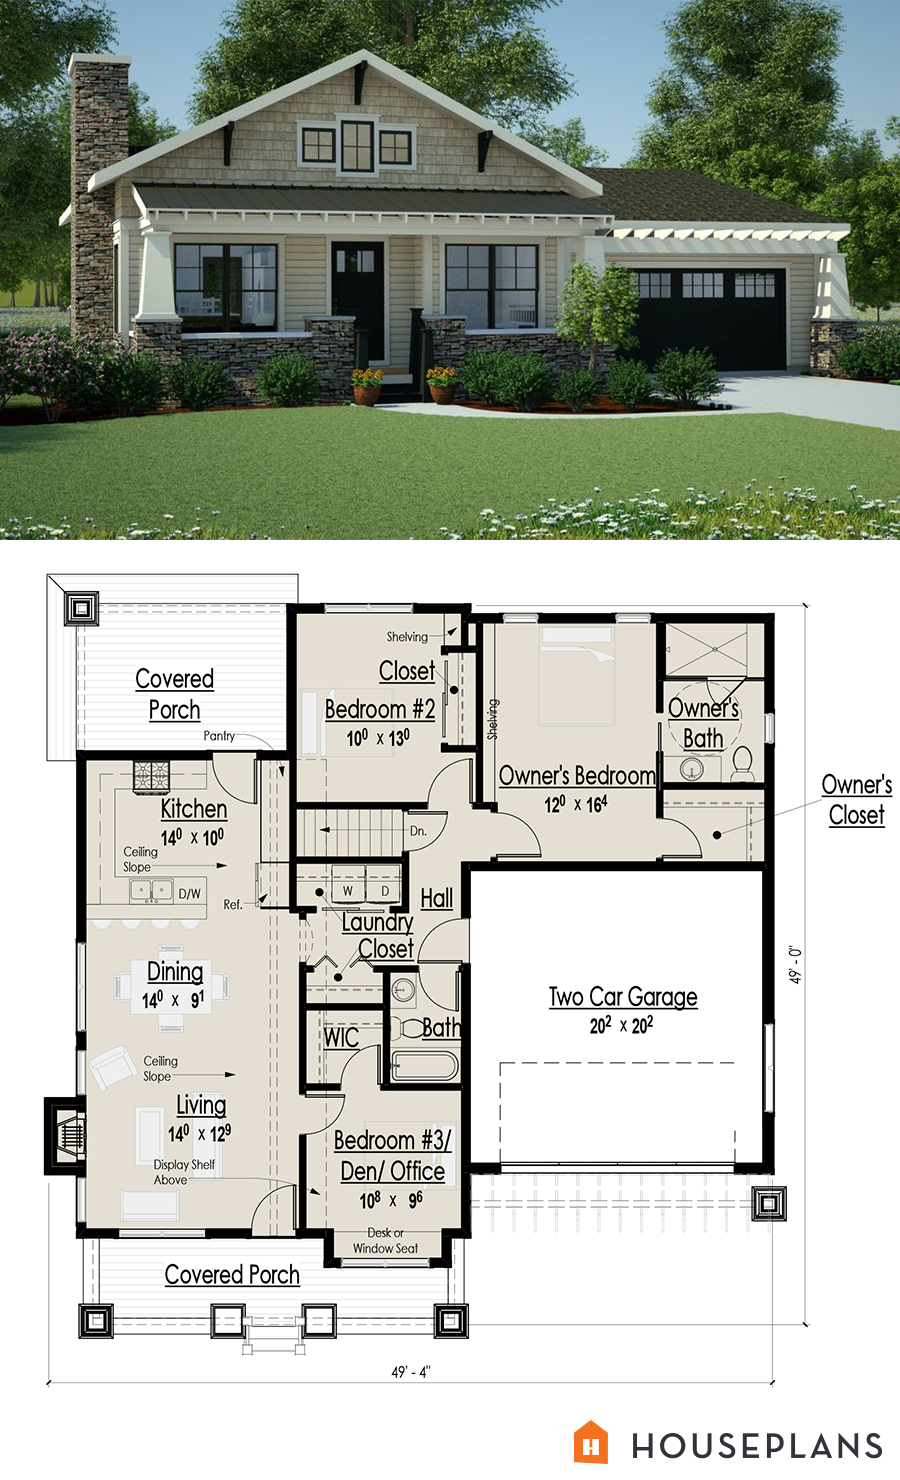 Architectural plans for a small craftsman bungalow sft